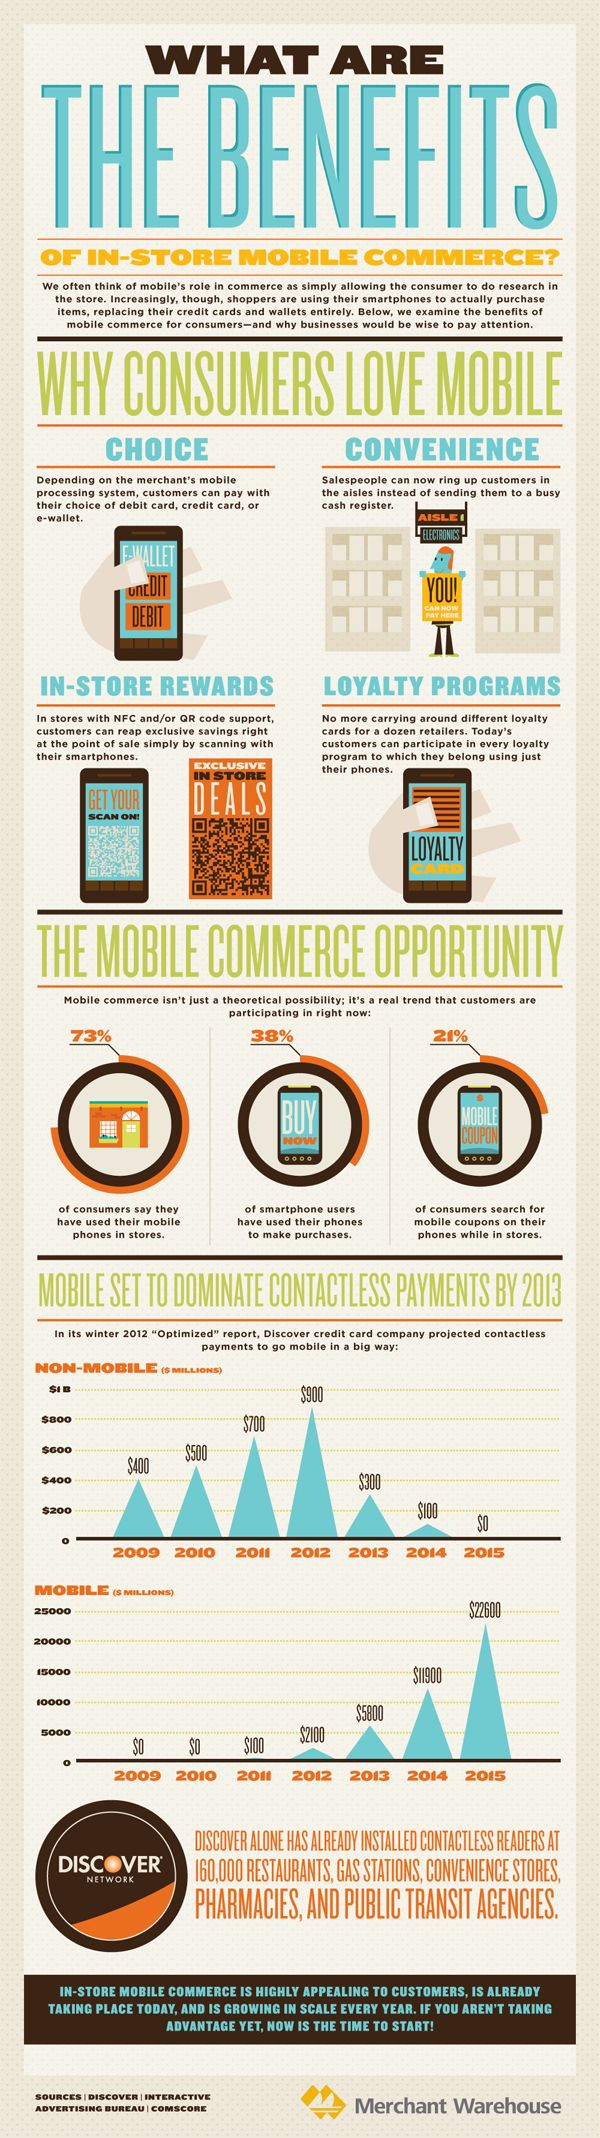 Great #infographic highlighting the benefits of mobile commerce